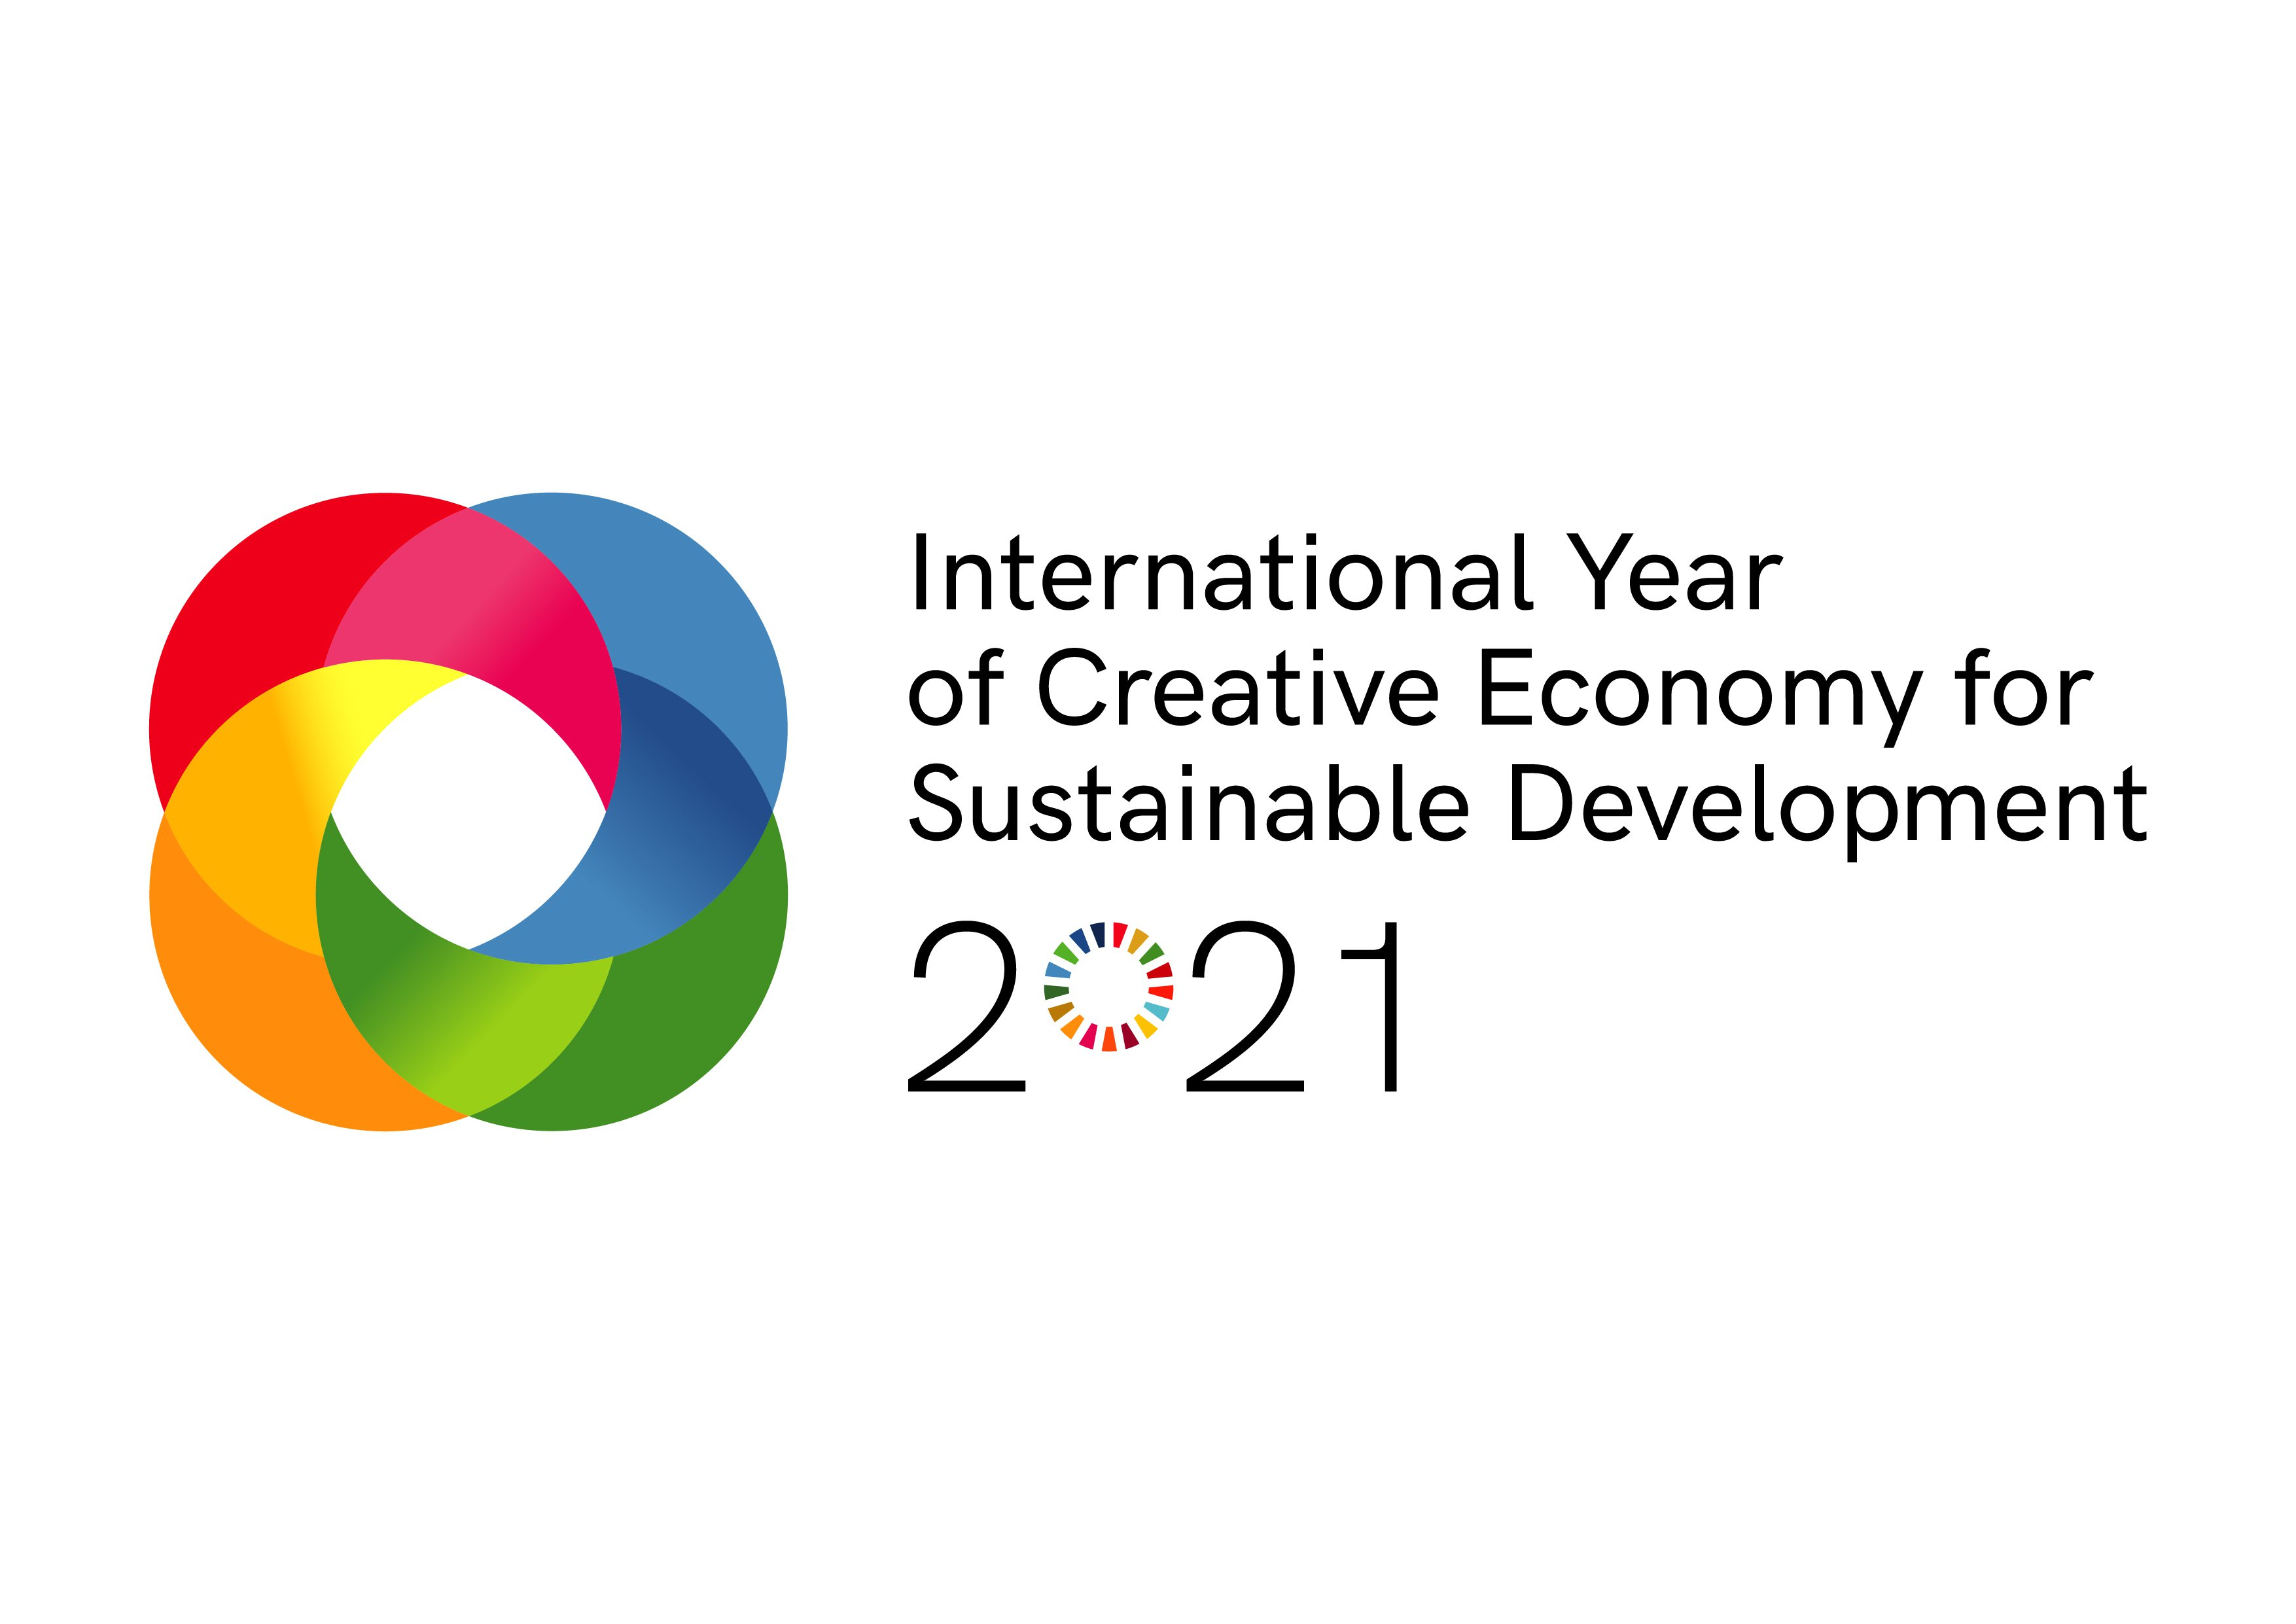 UNCTAD 2021 - International Year of Creative Economy for Sustainable Development